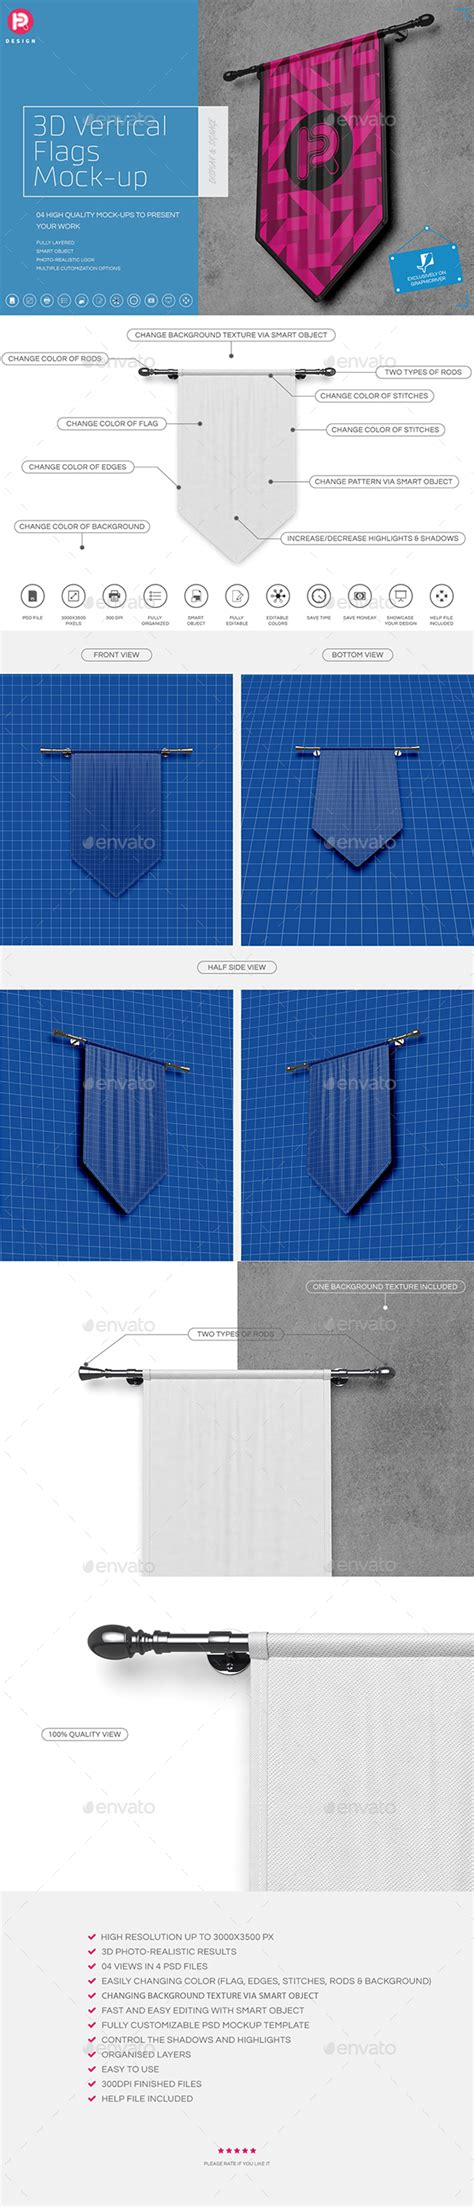 Topi Bat Flag High Quality Product04 3d vertical flags mock up set 1 by trdesignme graphicriver